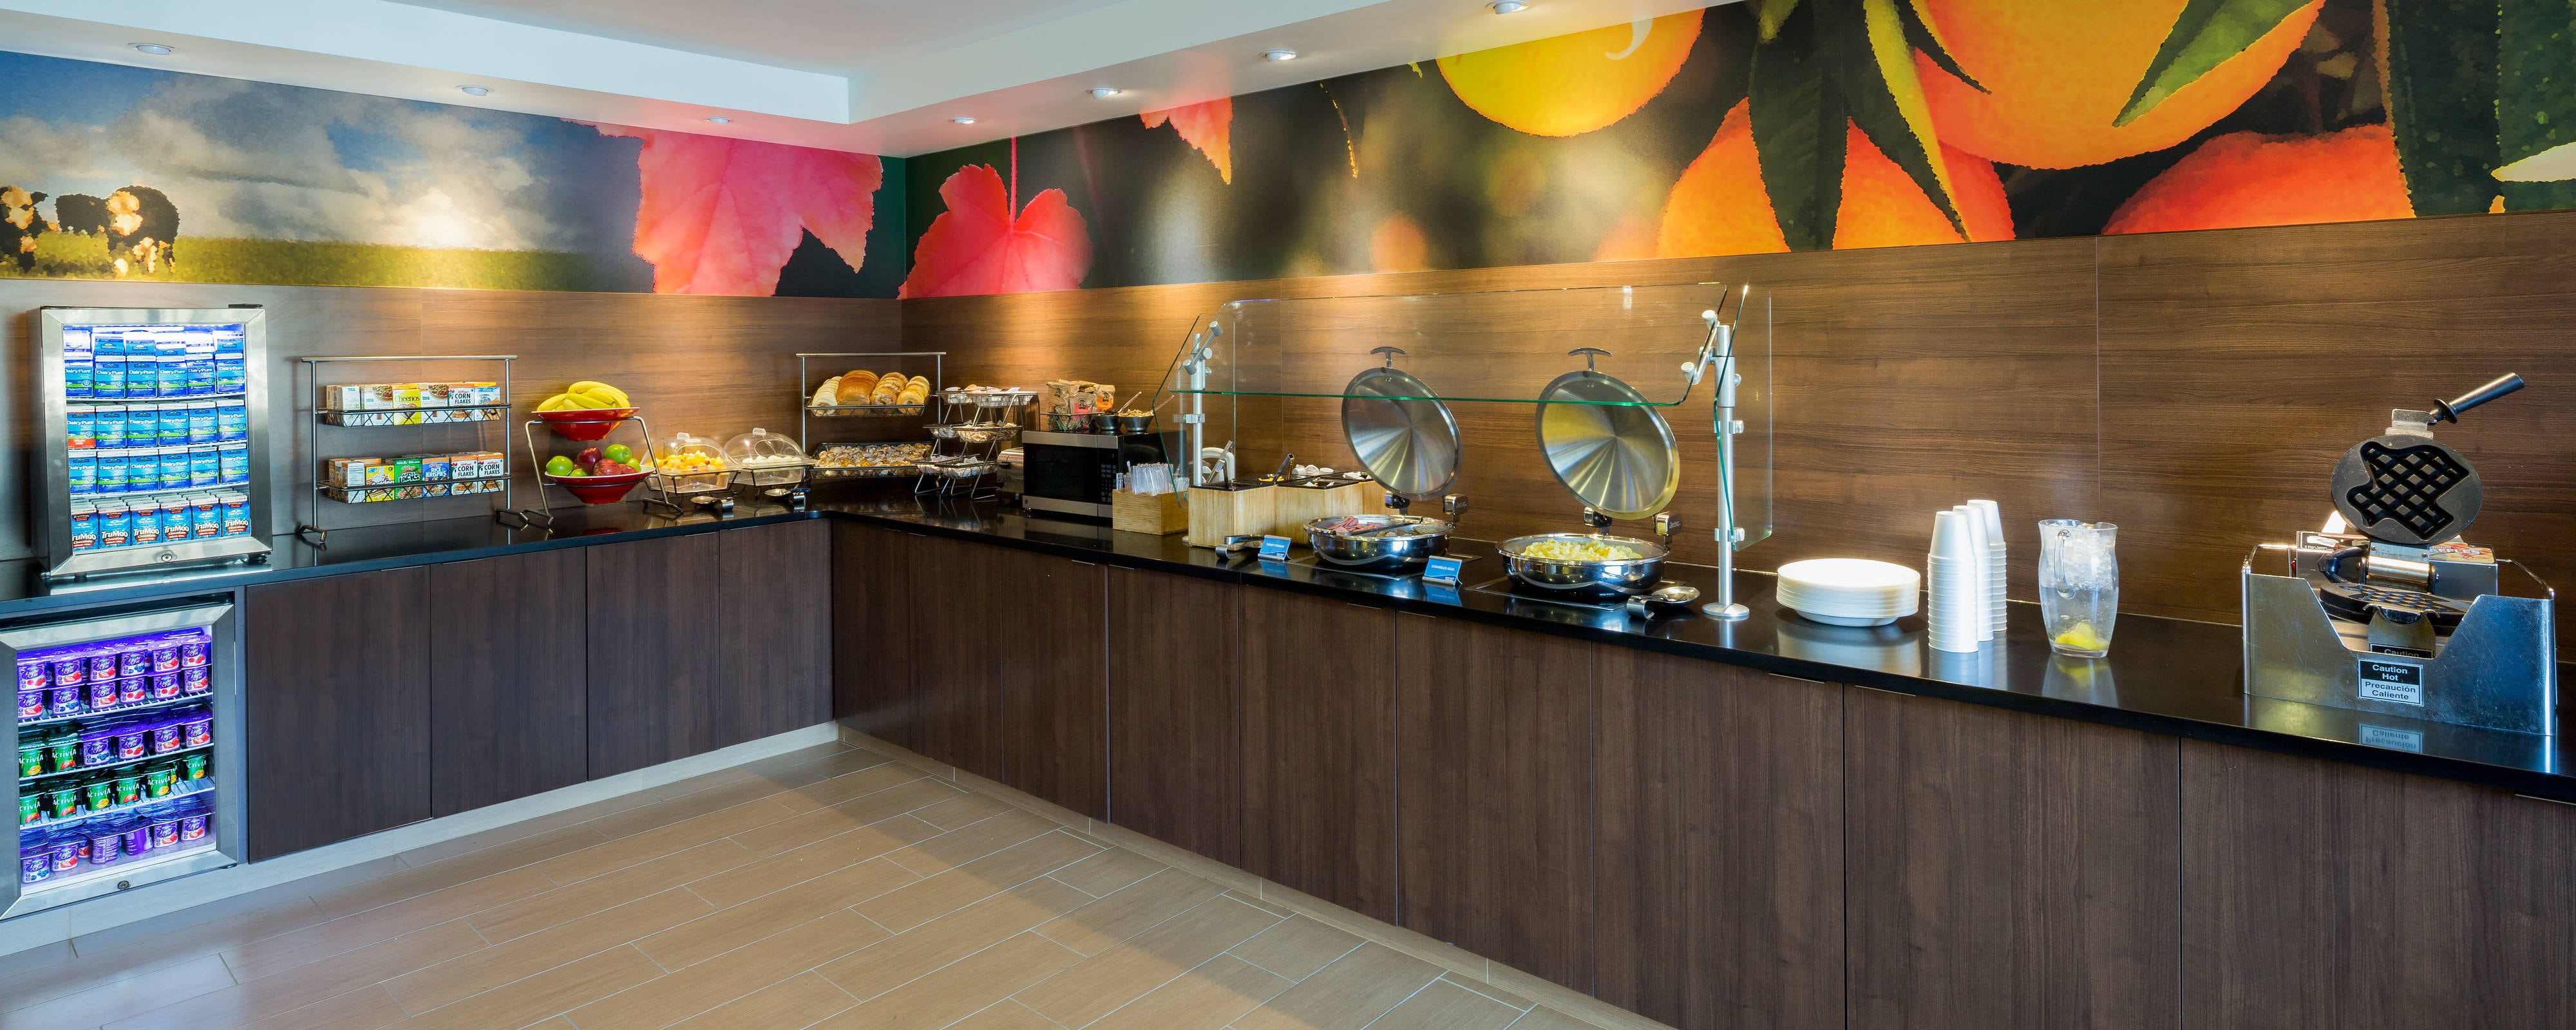 Restaurants Near San Antonio Airport Fairfield Inn San Antonio